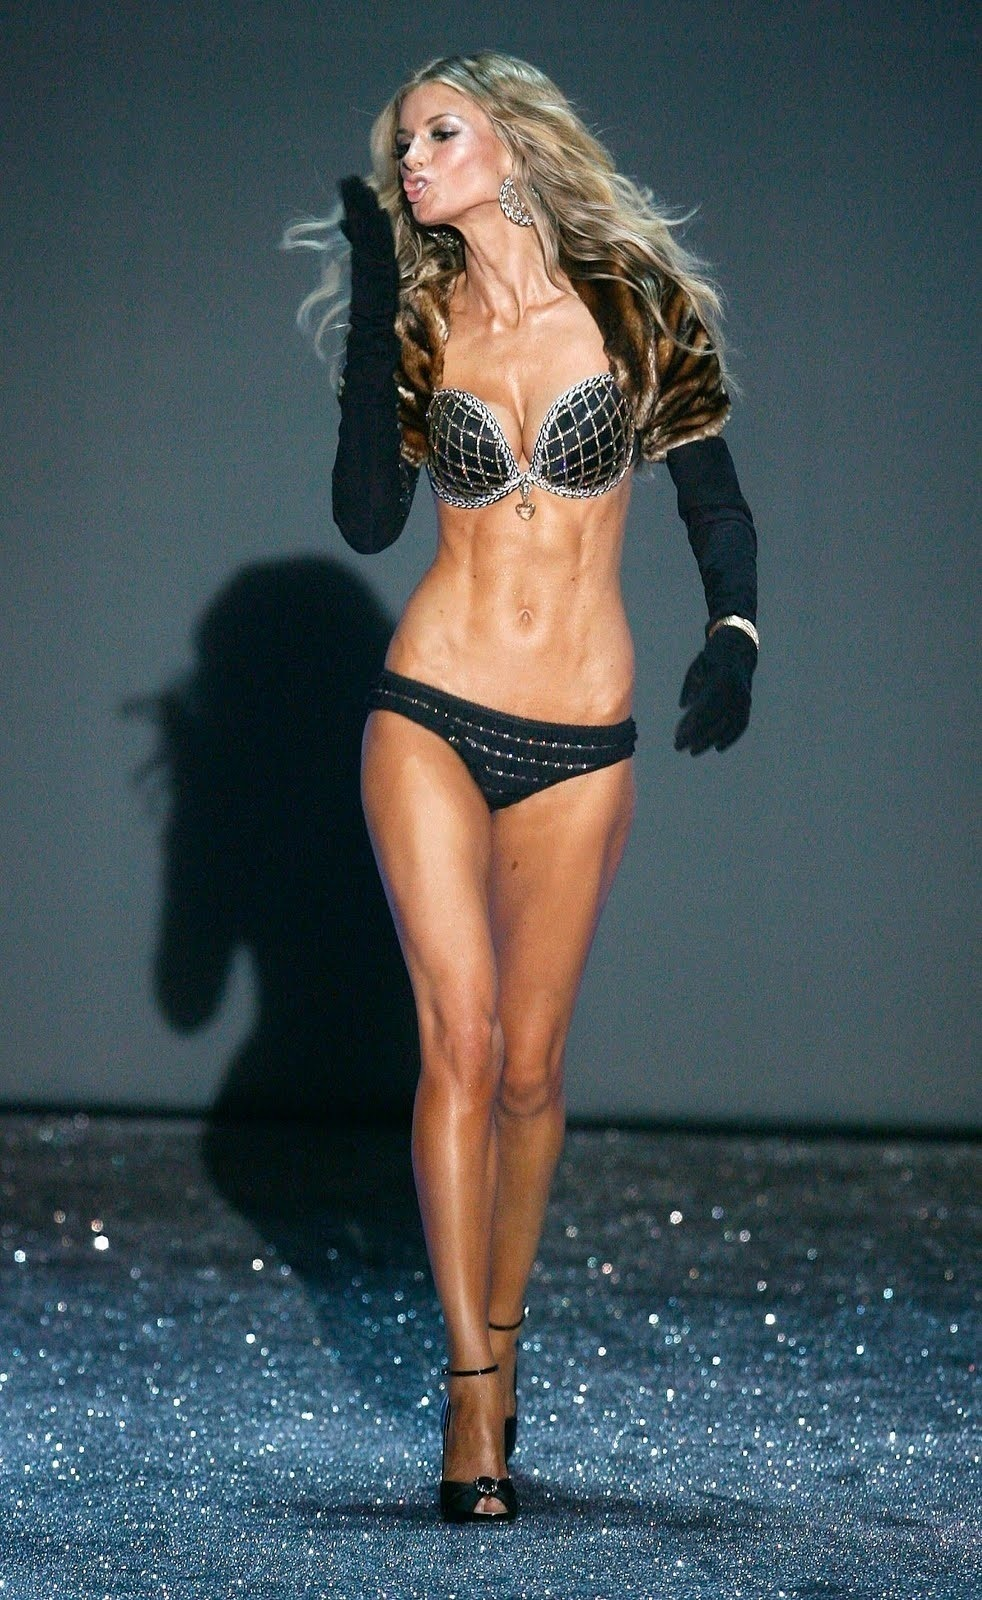 Victorias Secret Marisa Miller Victoria Secret Fashion Show Eee Cc Ff De Big Victoria Secret Fashion Show